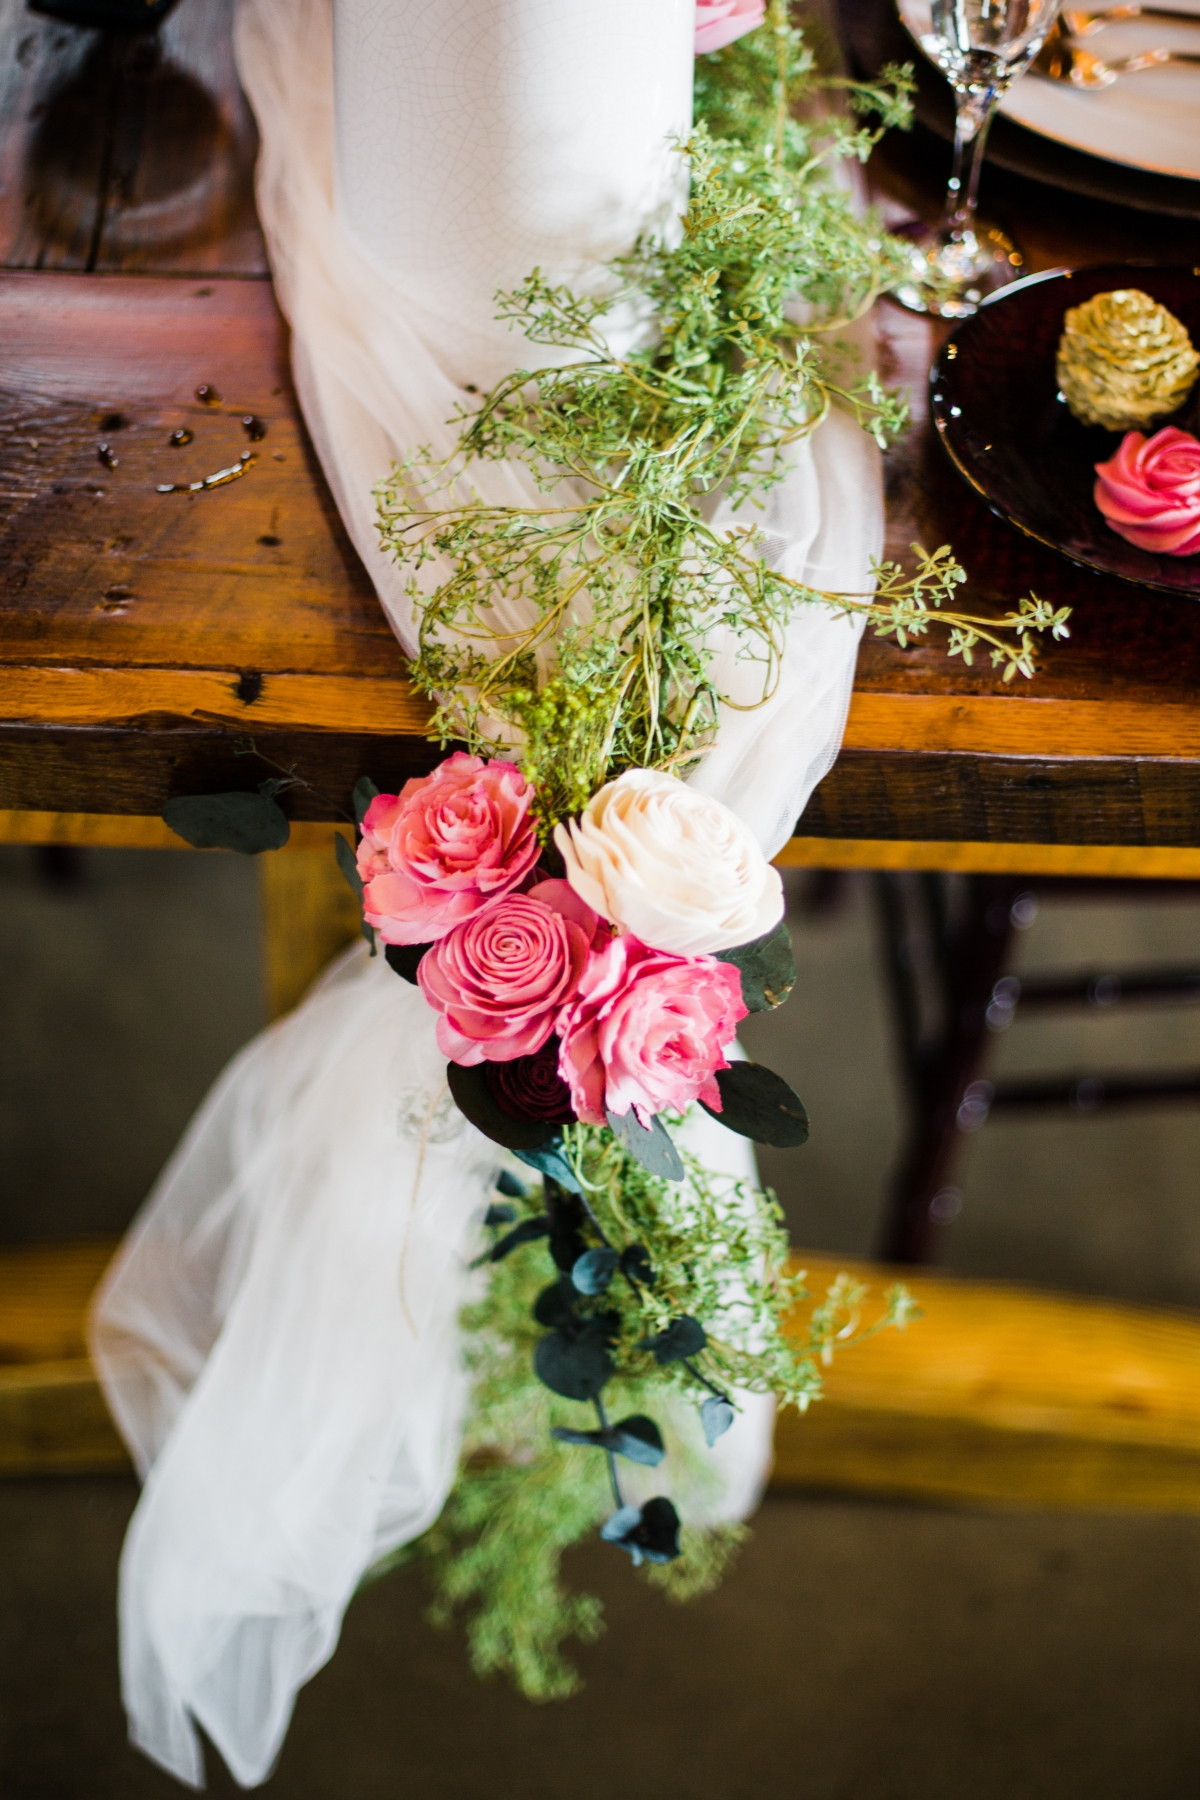 Wedding Table Runner with Flowers